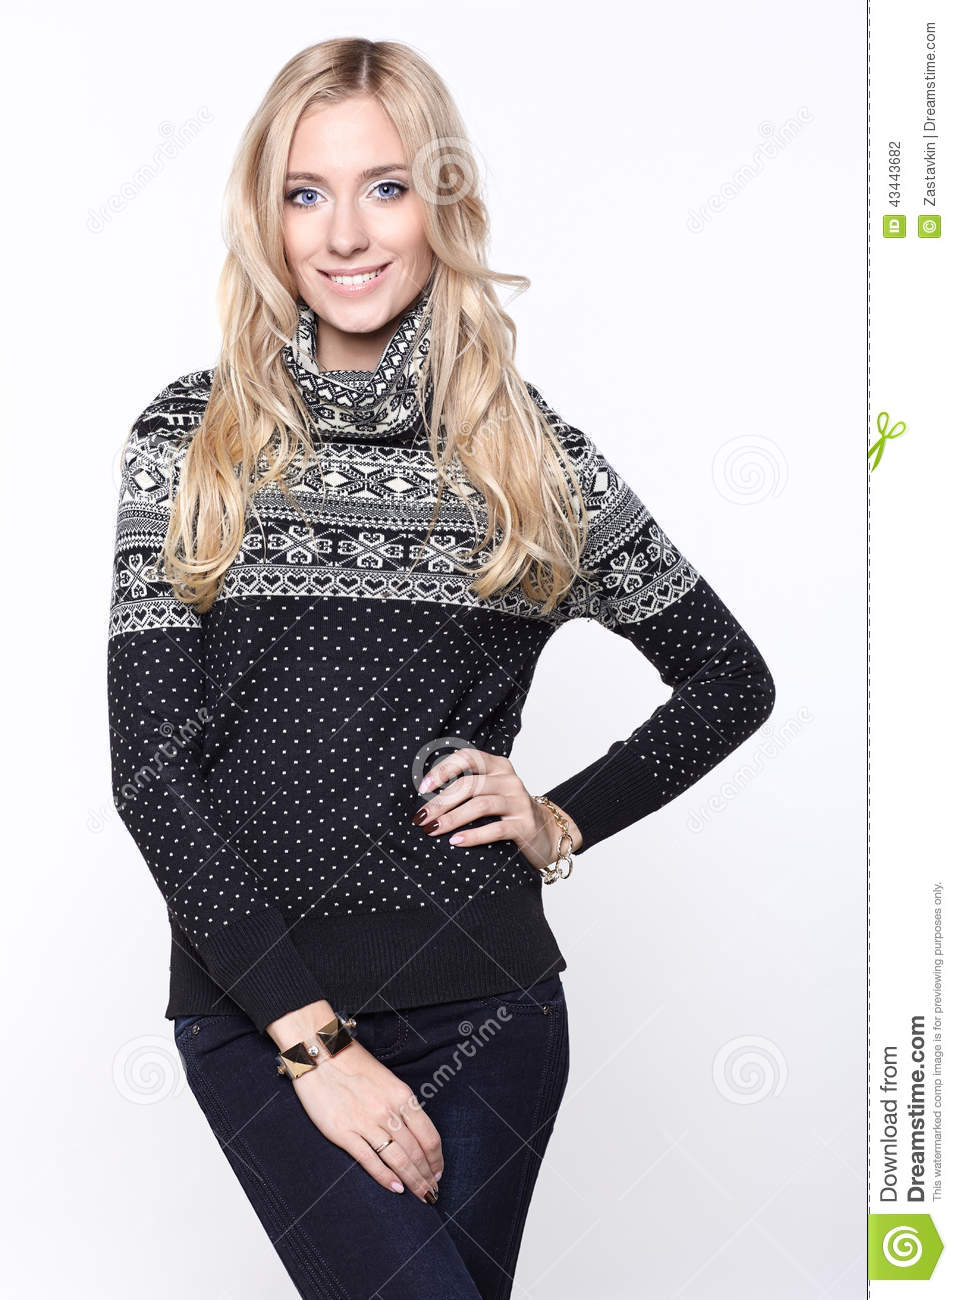 2019 year for women- How to knitted wear: sweaters for women